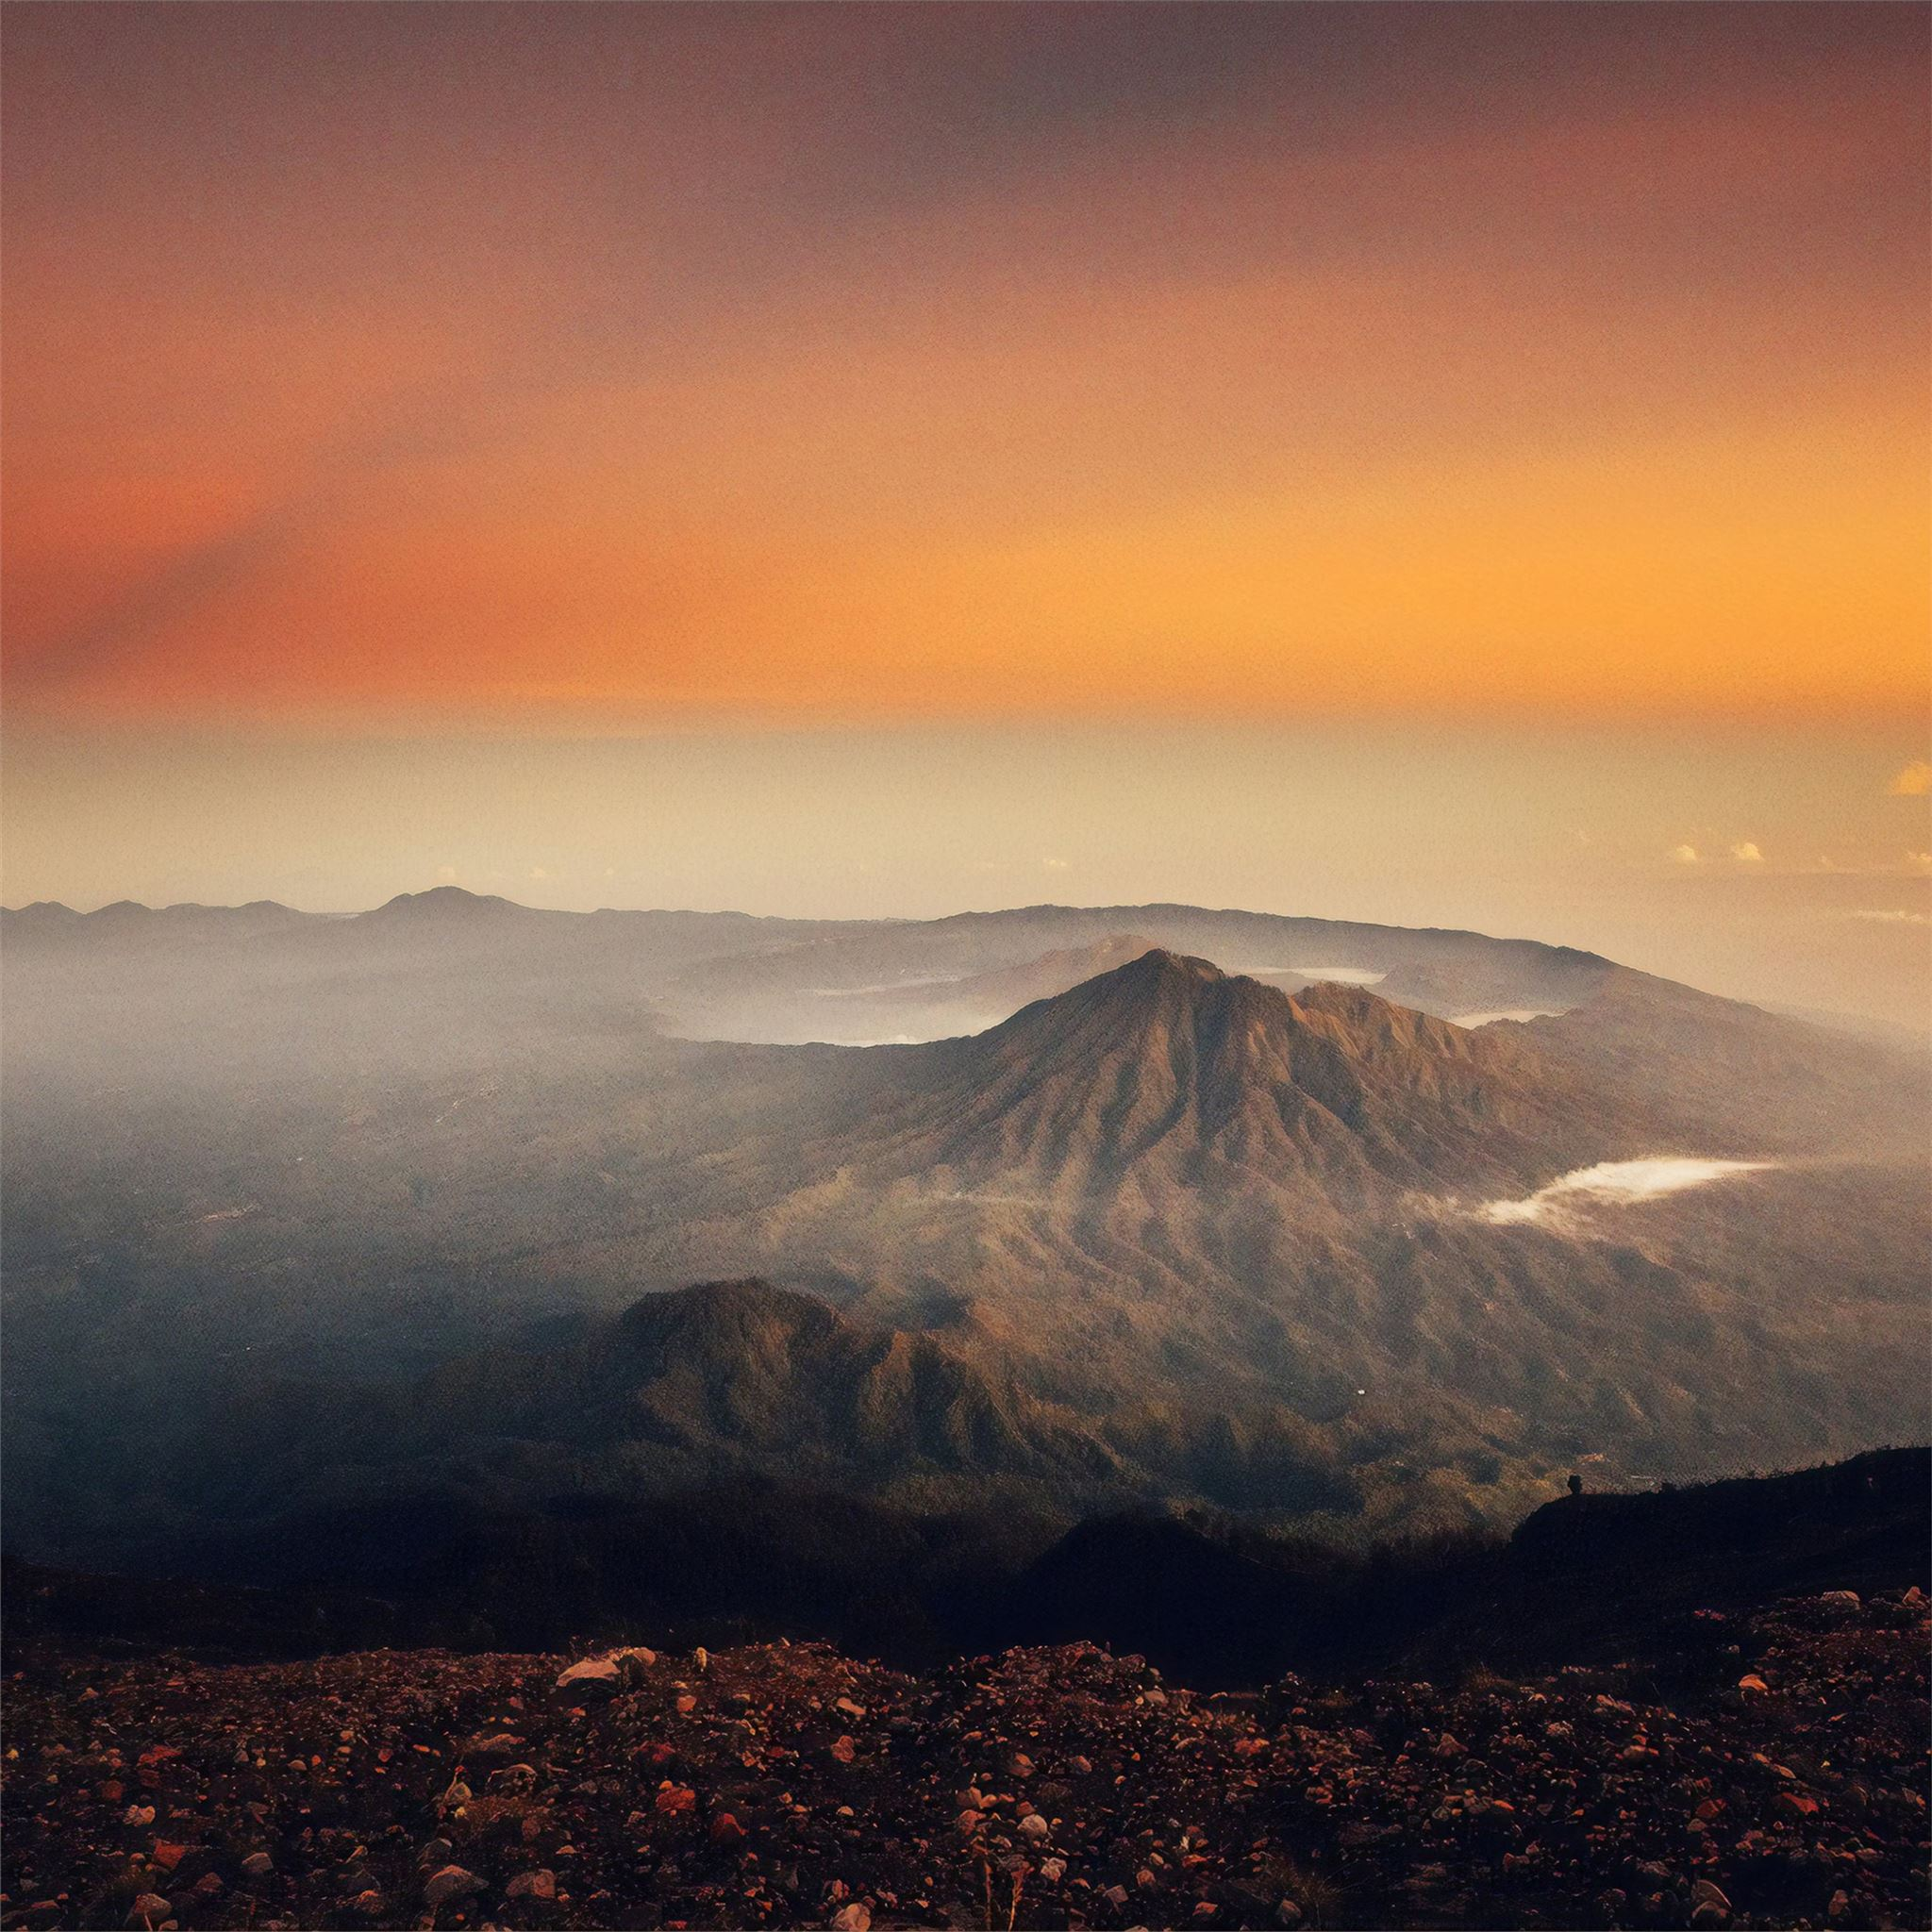 Volcano Sunset Landscape 4k Ipad Pro Wallpapers Free Download